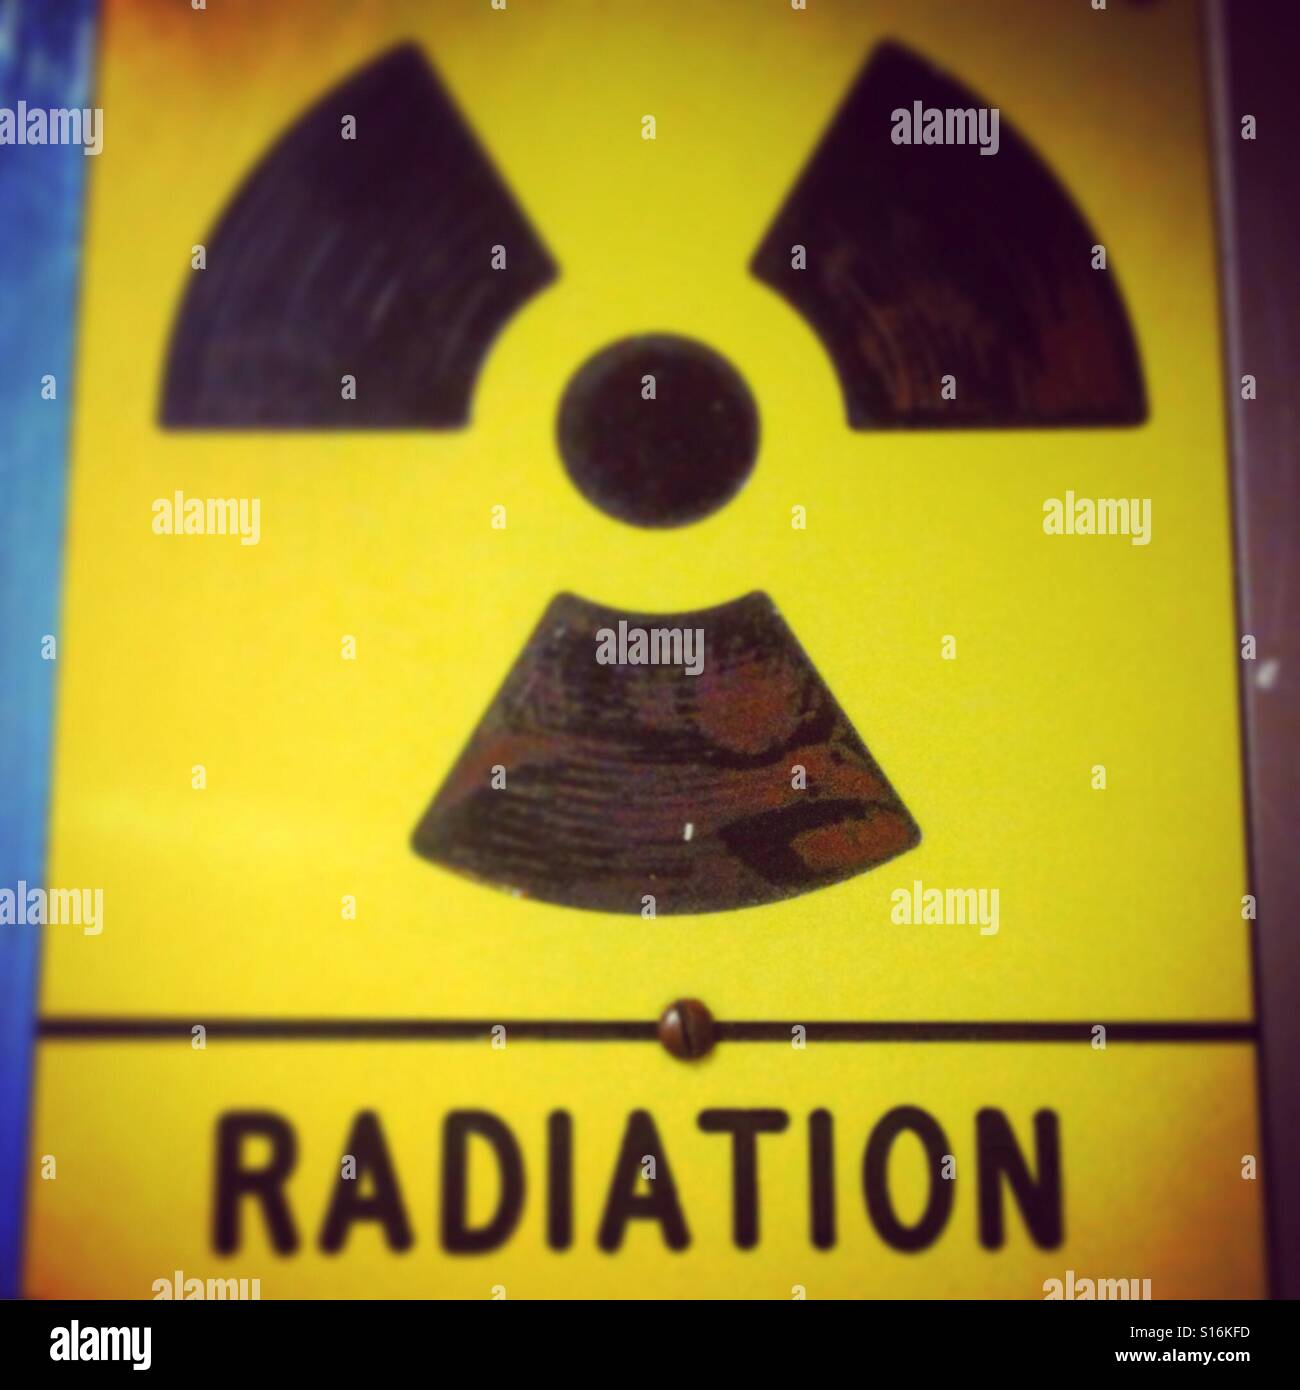 Radiation sign in a hospital - Stock Image